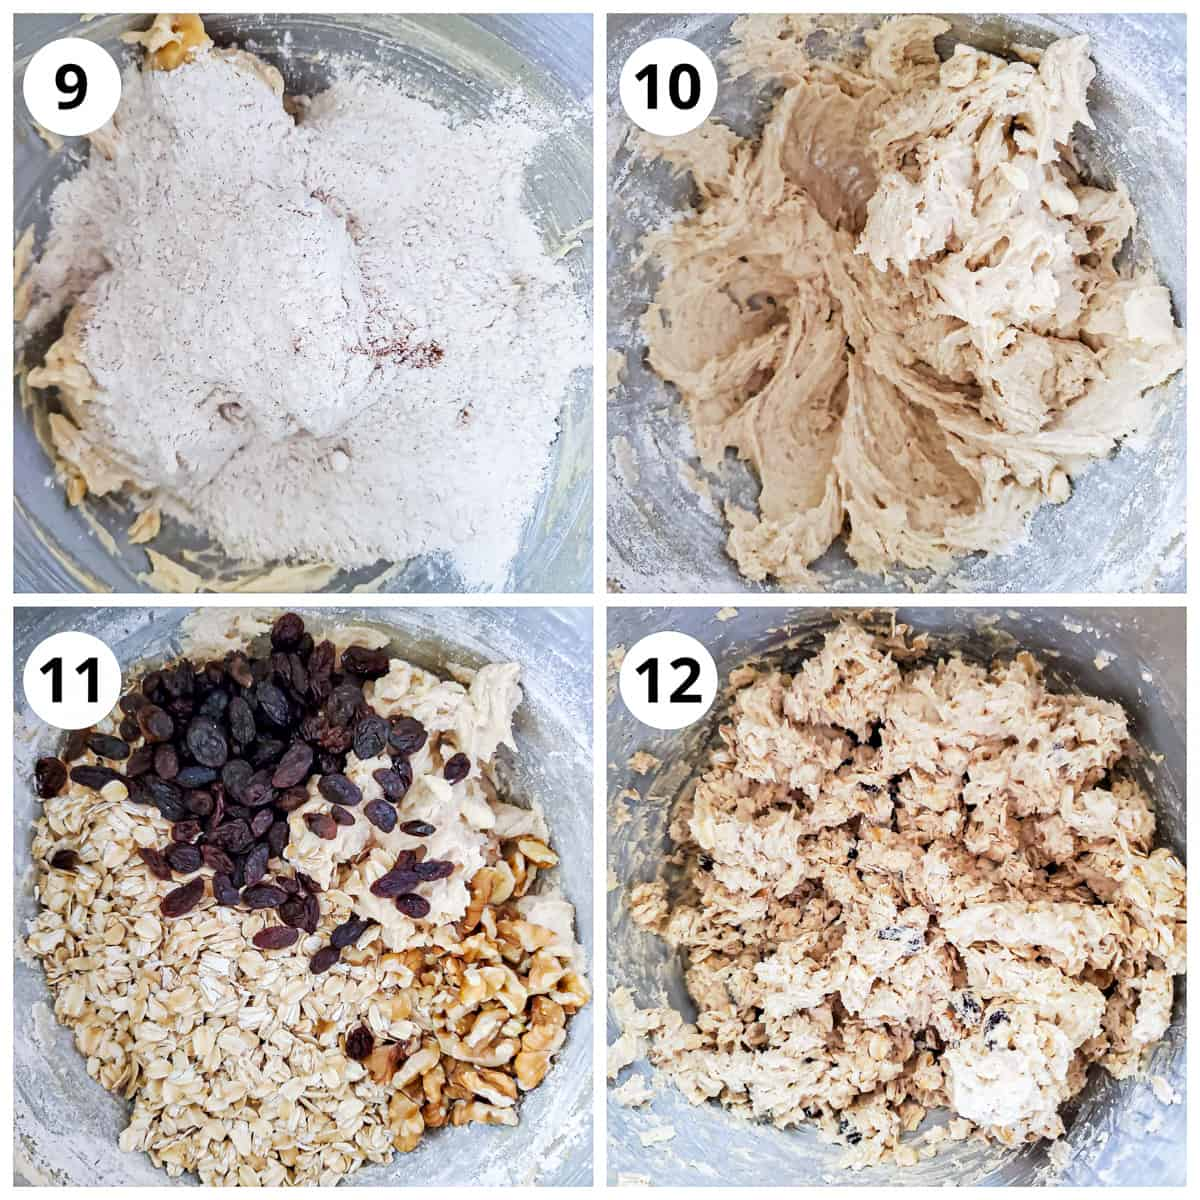 Adding dry ingredients, flour, raisin, oats and walnut to wet and mix until combined.